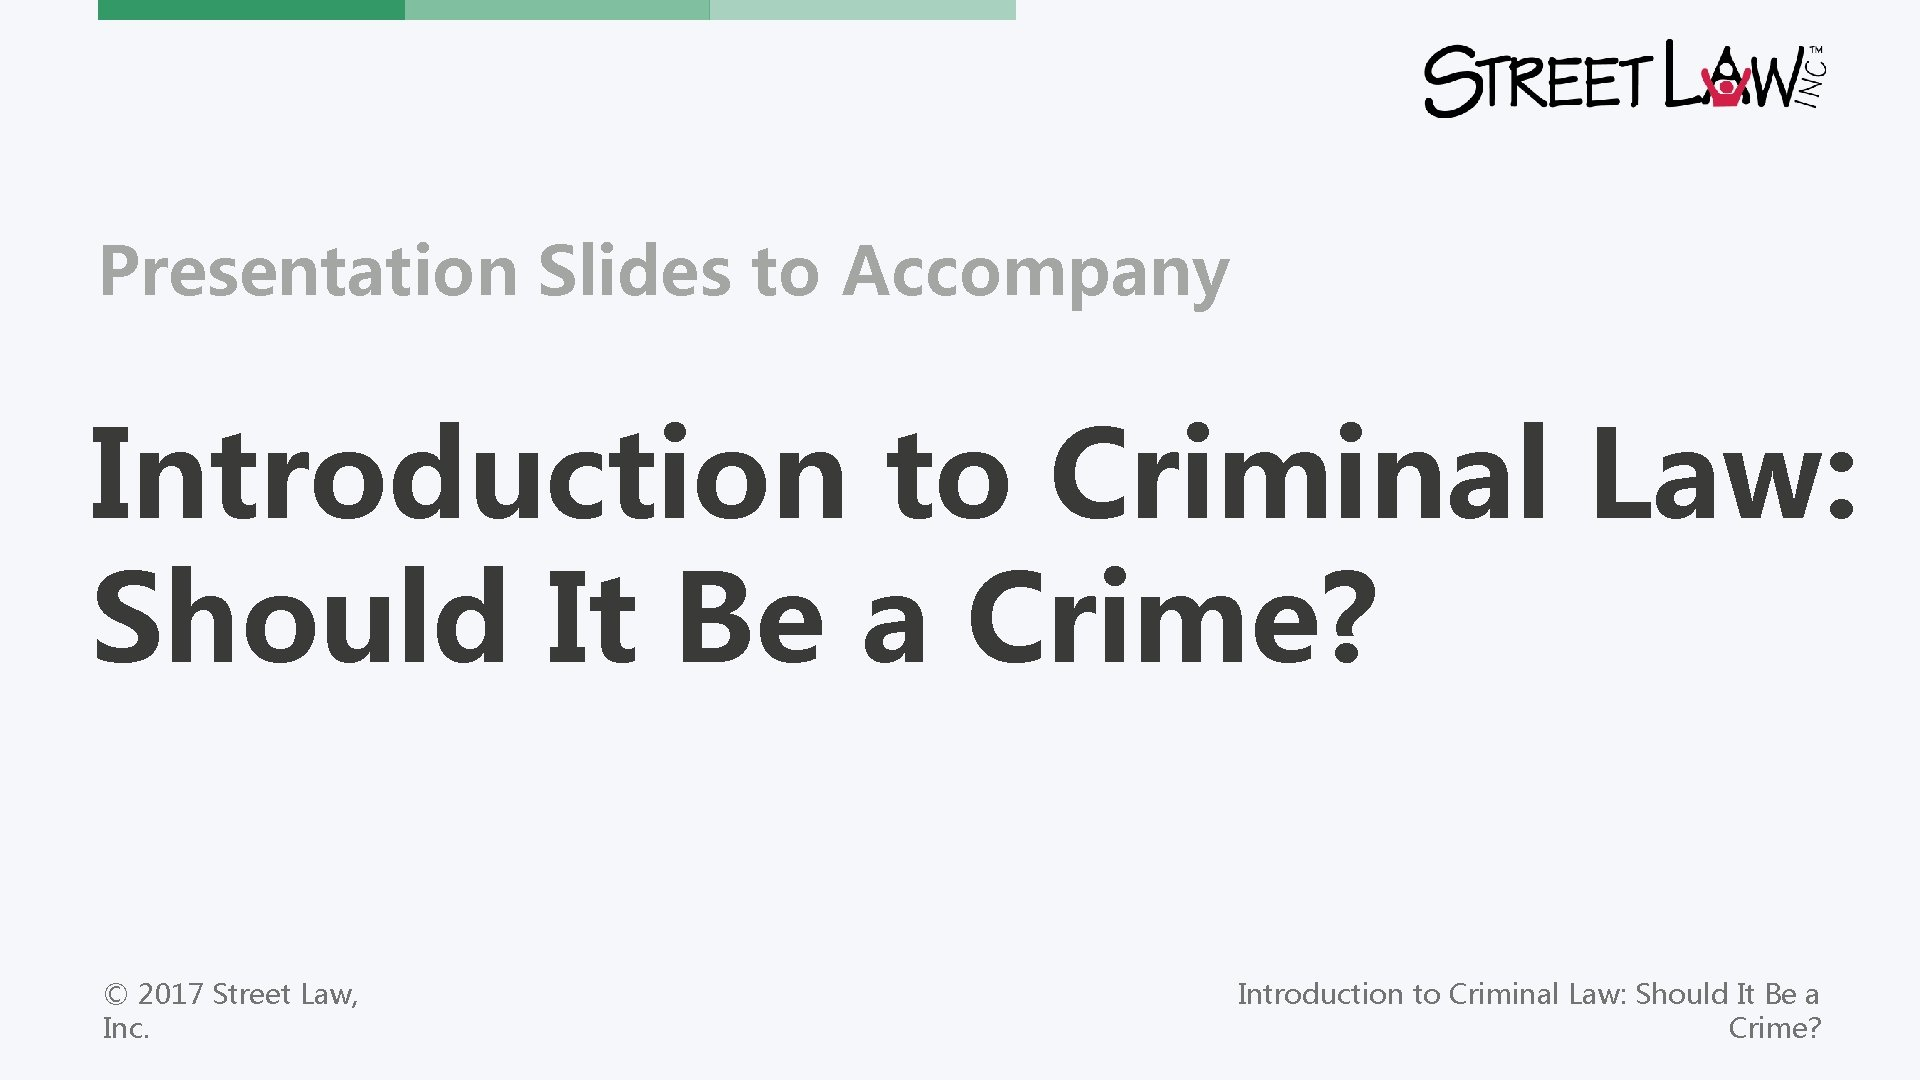 Presentation Slides to Accompany Introduction to Criminal Law: Should It Be a Crime? ©